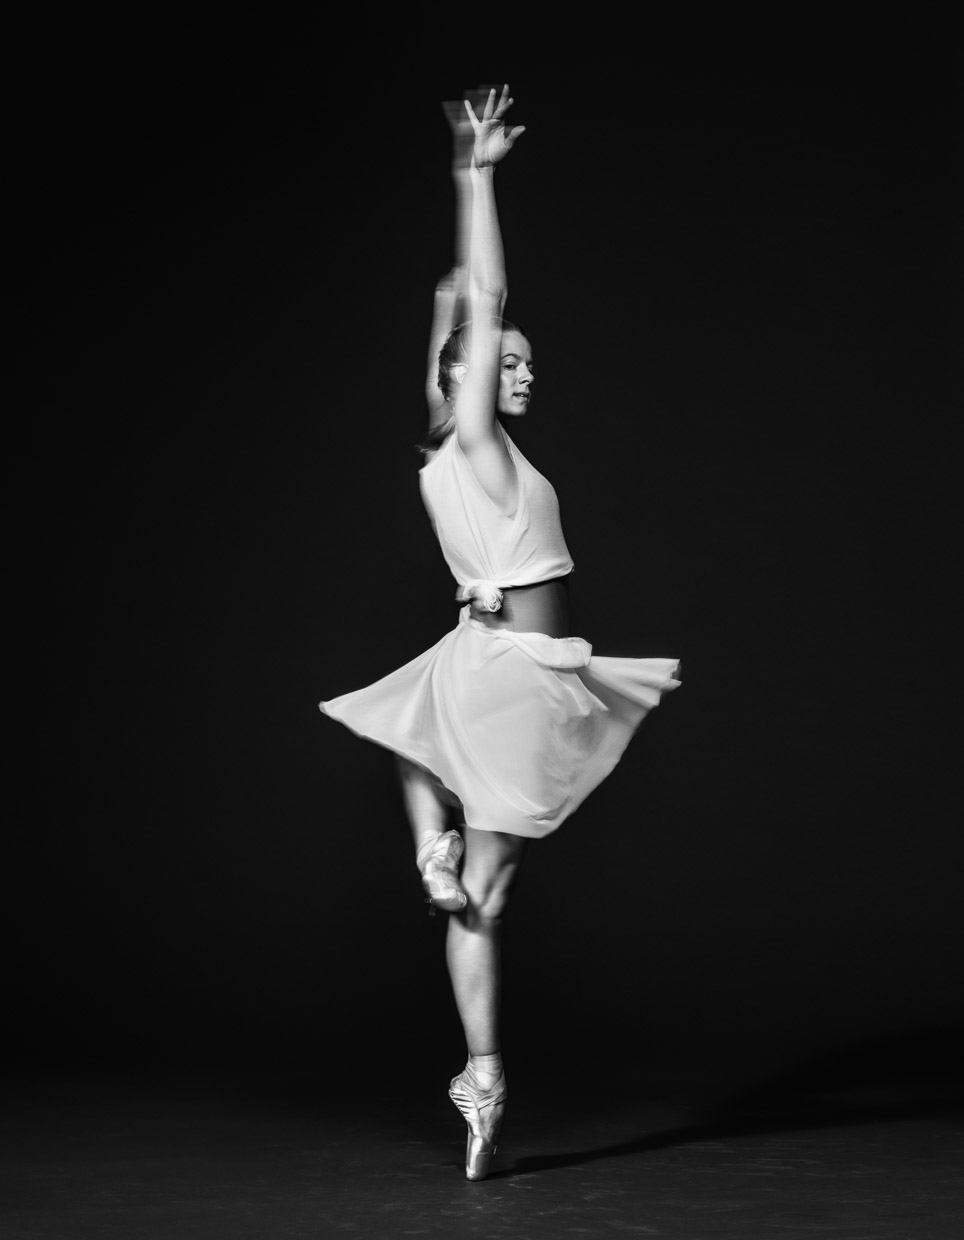 ballet_Lauren_blur-031_03copy2